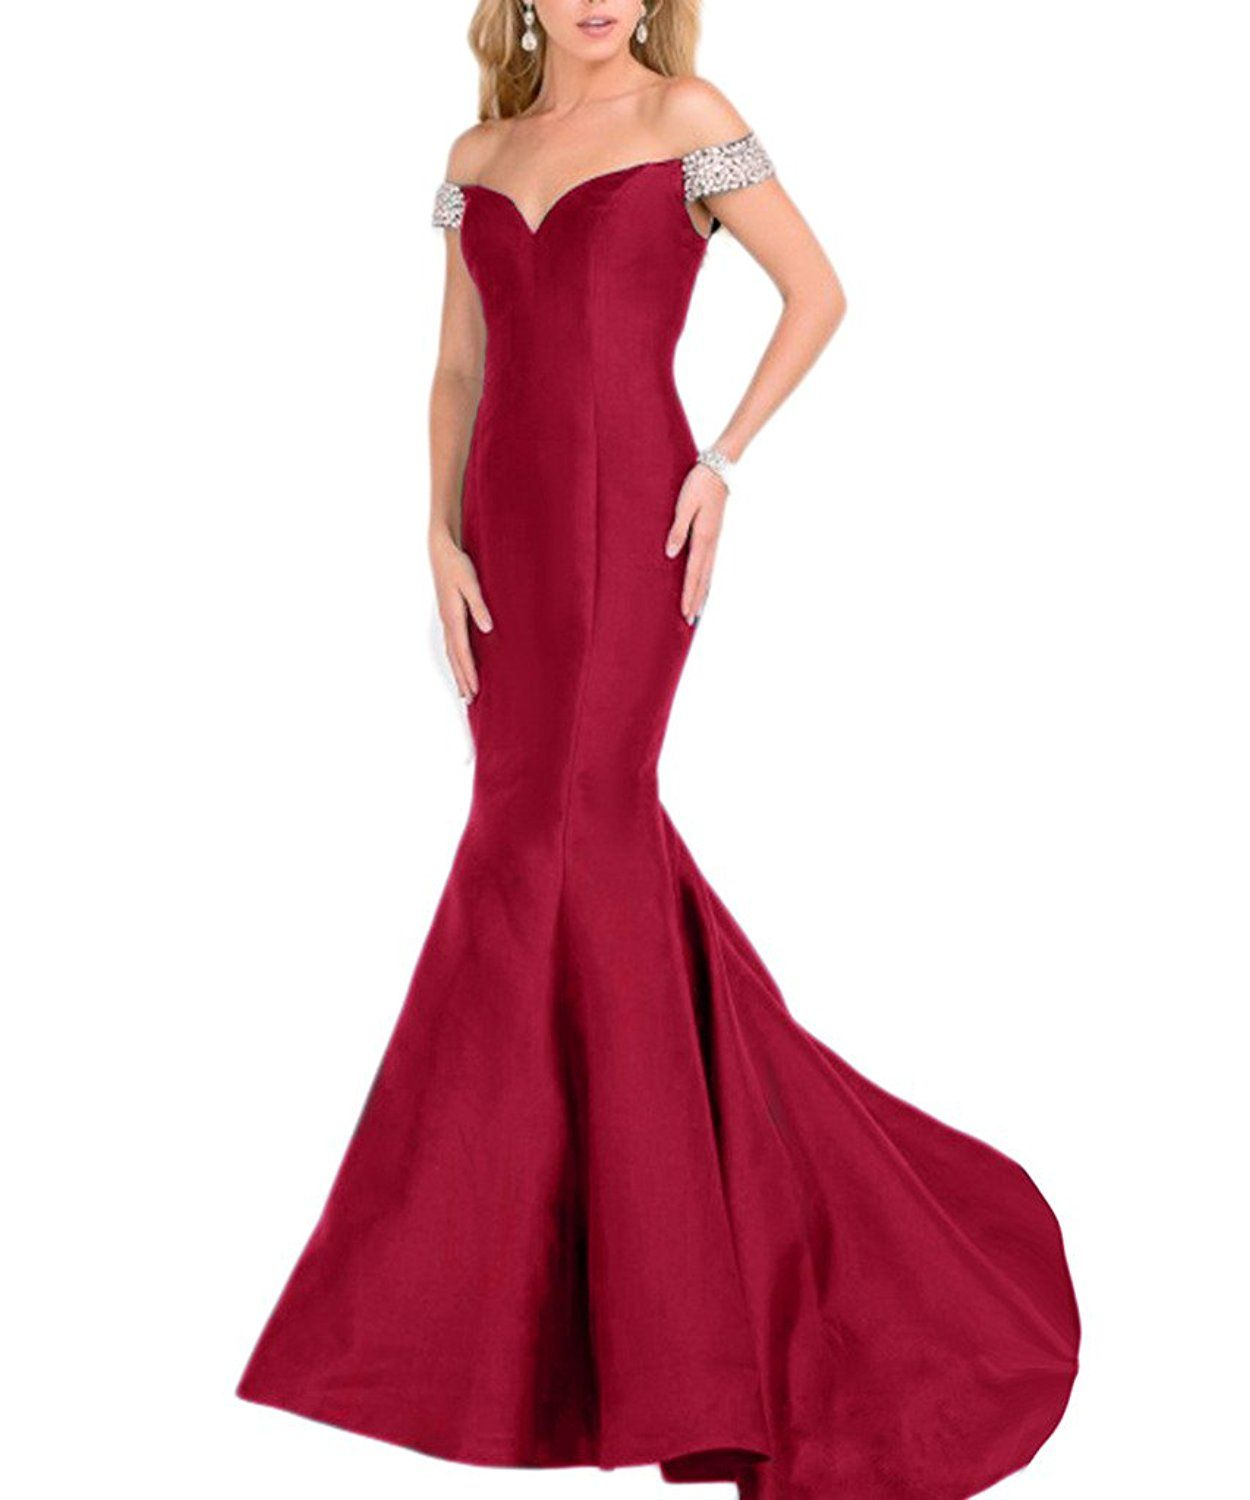 Beilite womenus off shoulder satin mermaid evening gowns long prom